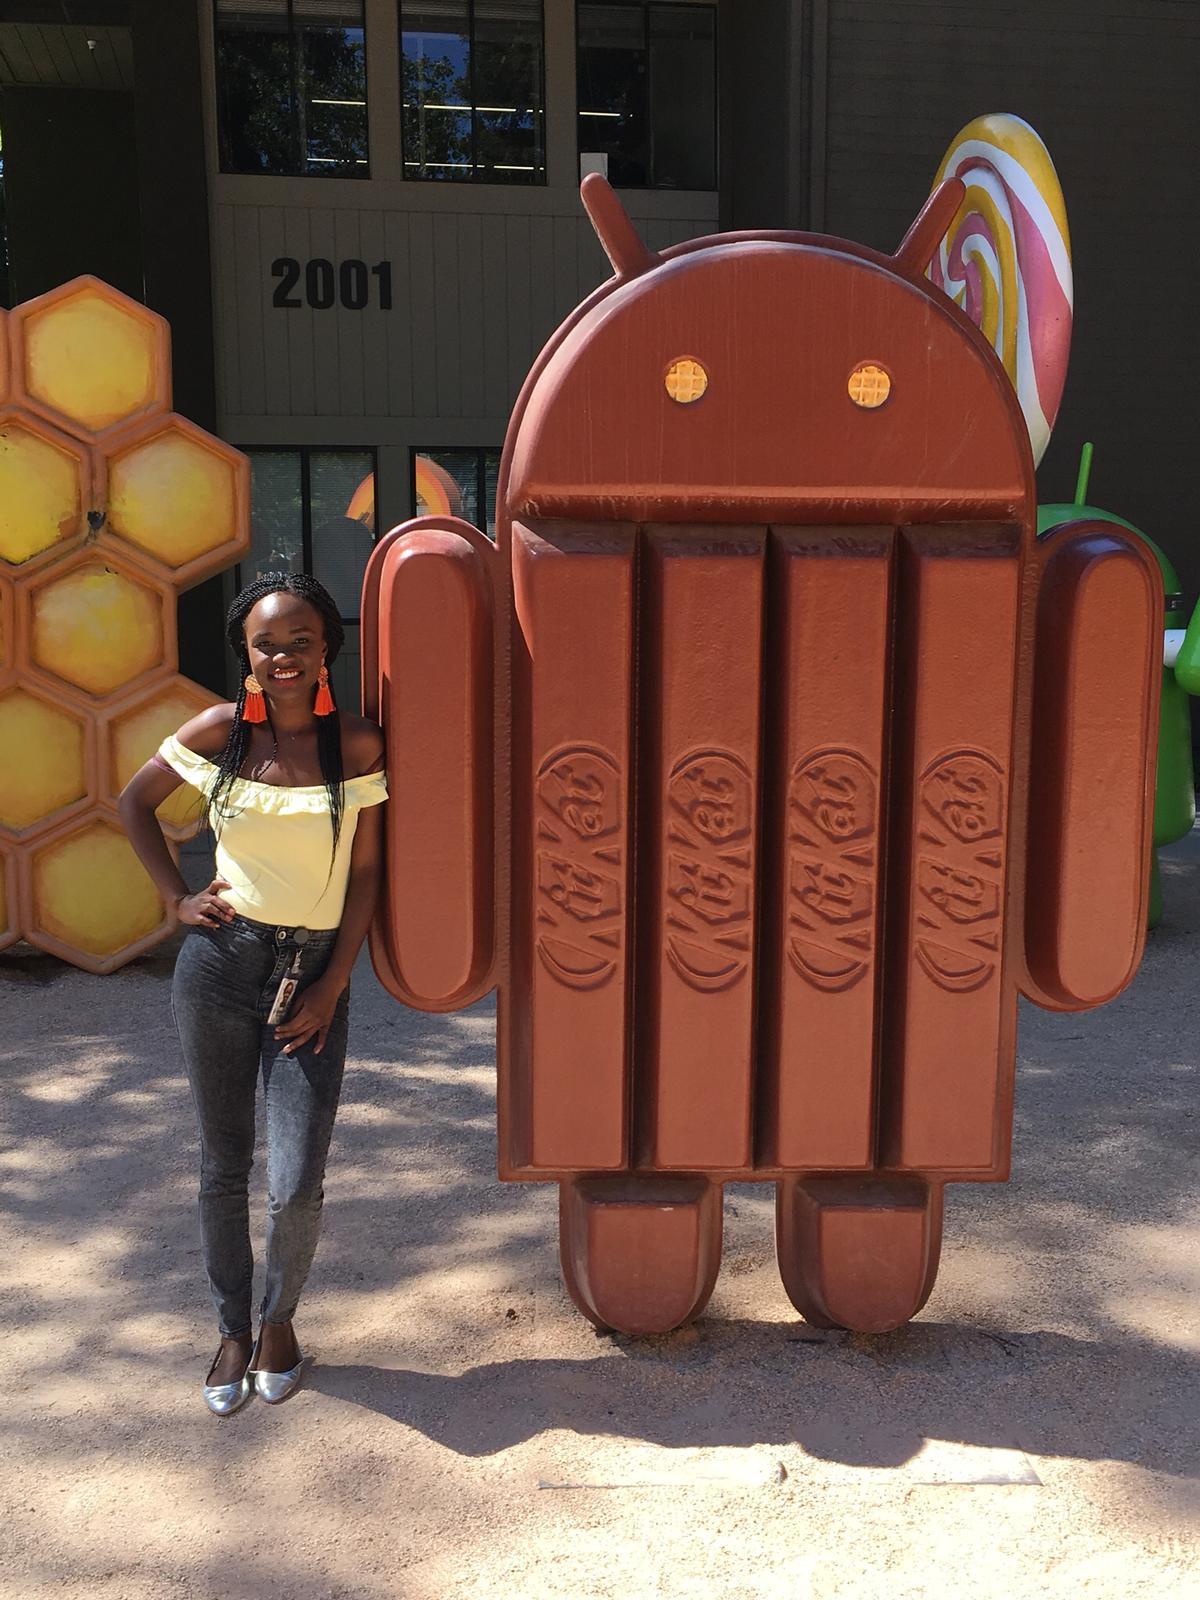 KitKat Android and Miss Independent spotted in Google Mountain View, CA